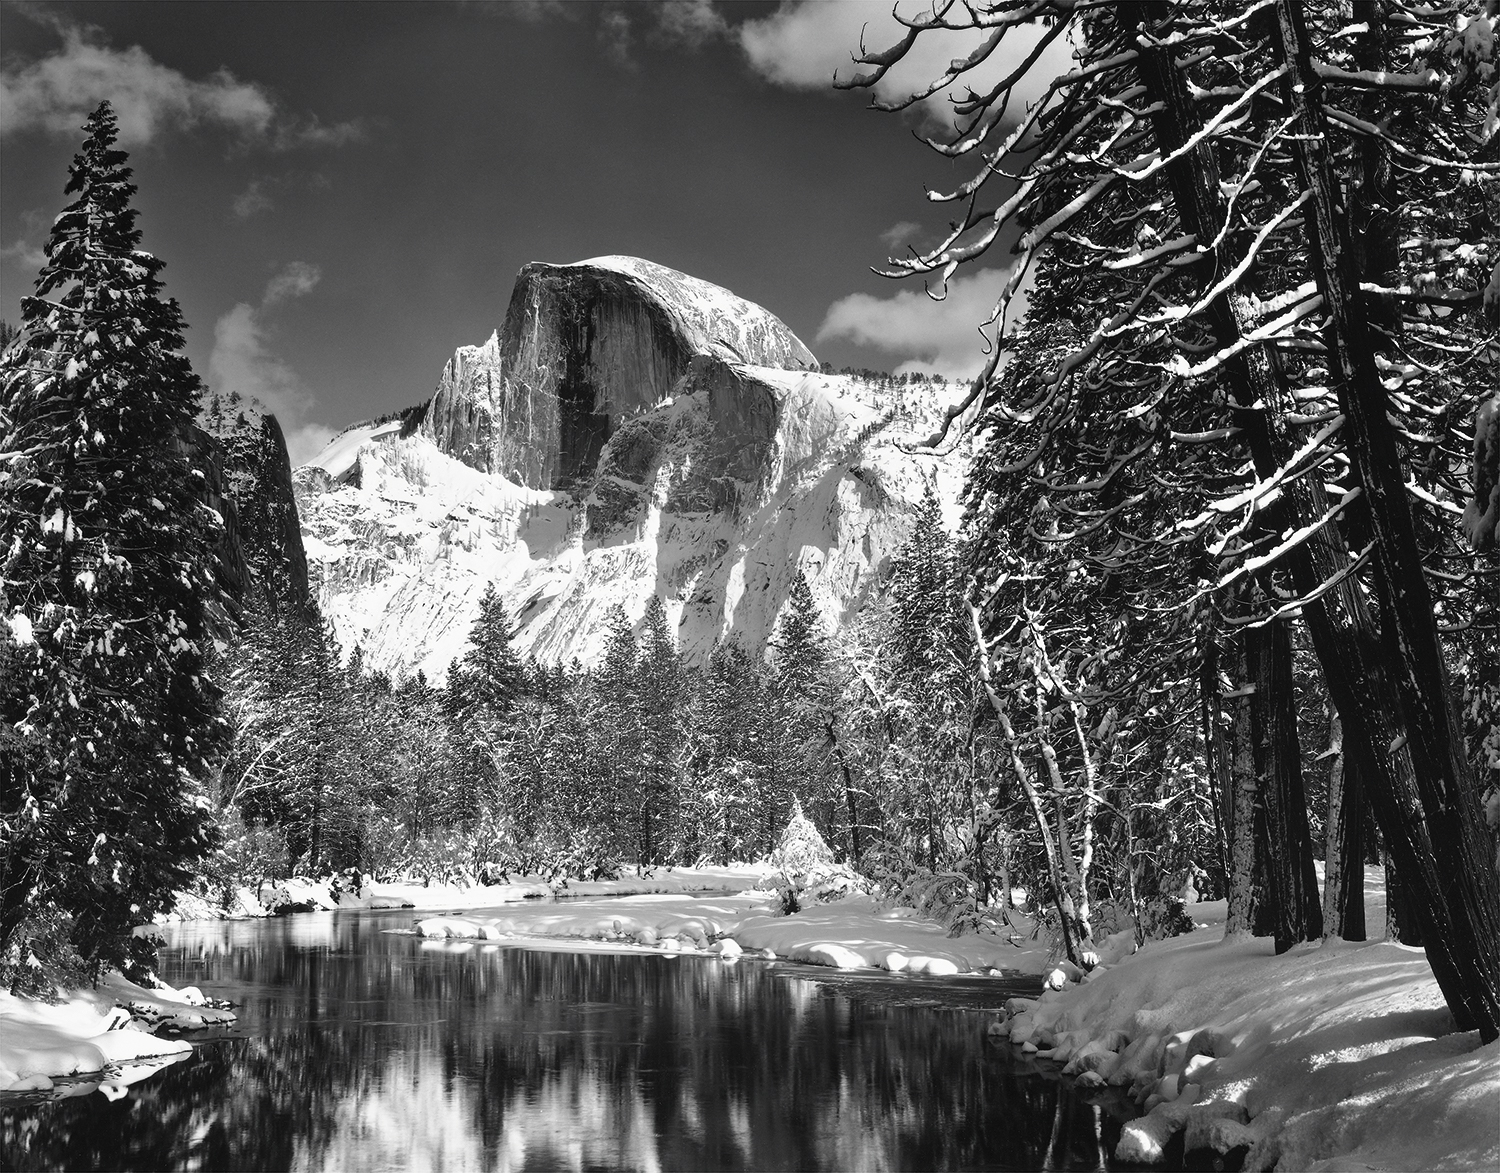 Half Dome, Merced River, Winter, 1938 Photograph by Ansel Adams